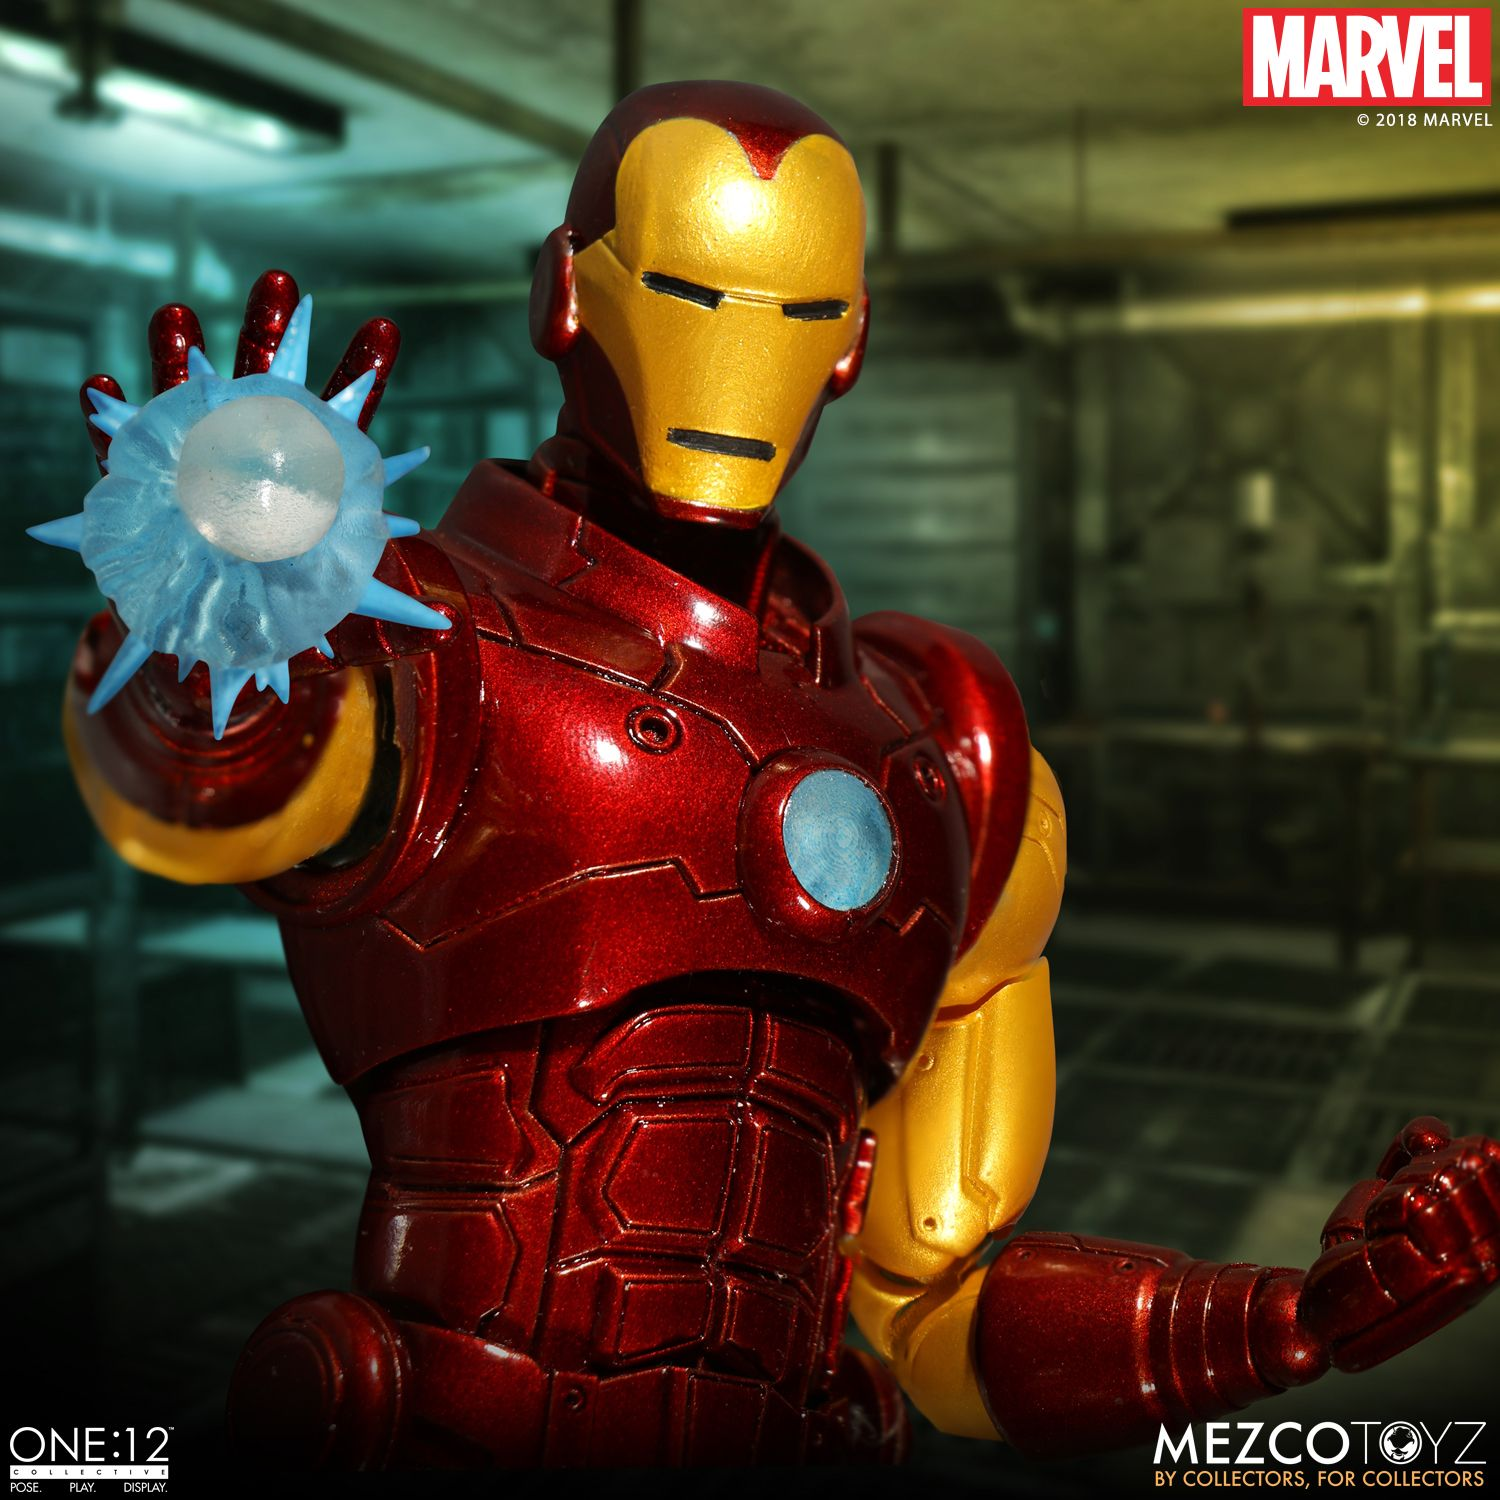 mezco toyz iron man one 12 collective figure available to. Black Bedroom Furniture Sets. Home Design Ideas